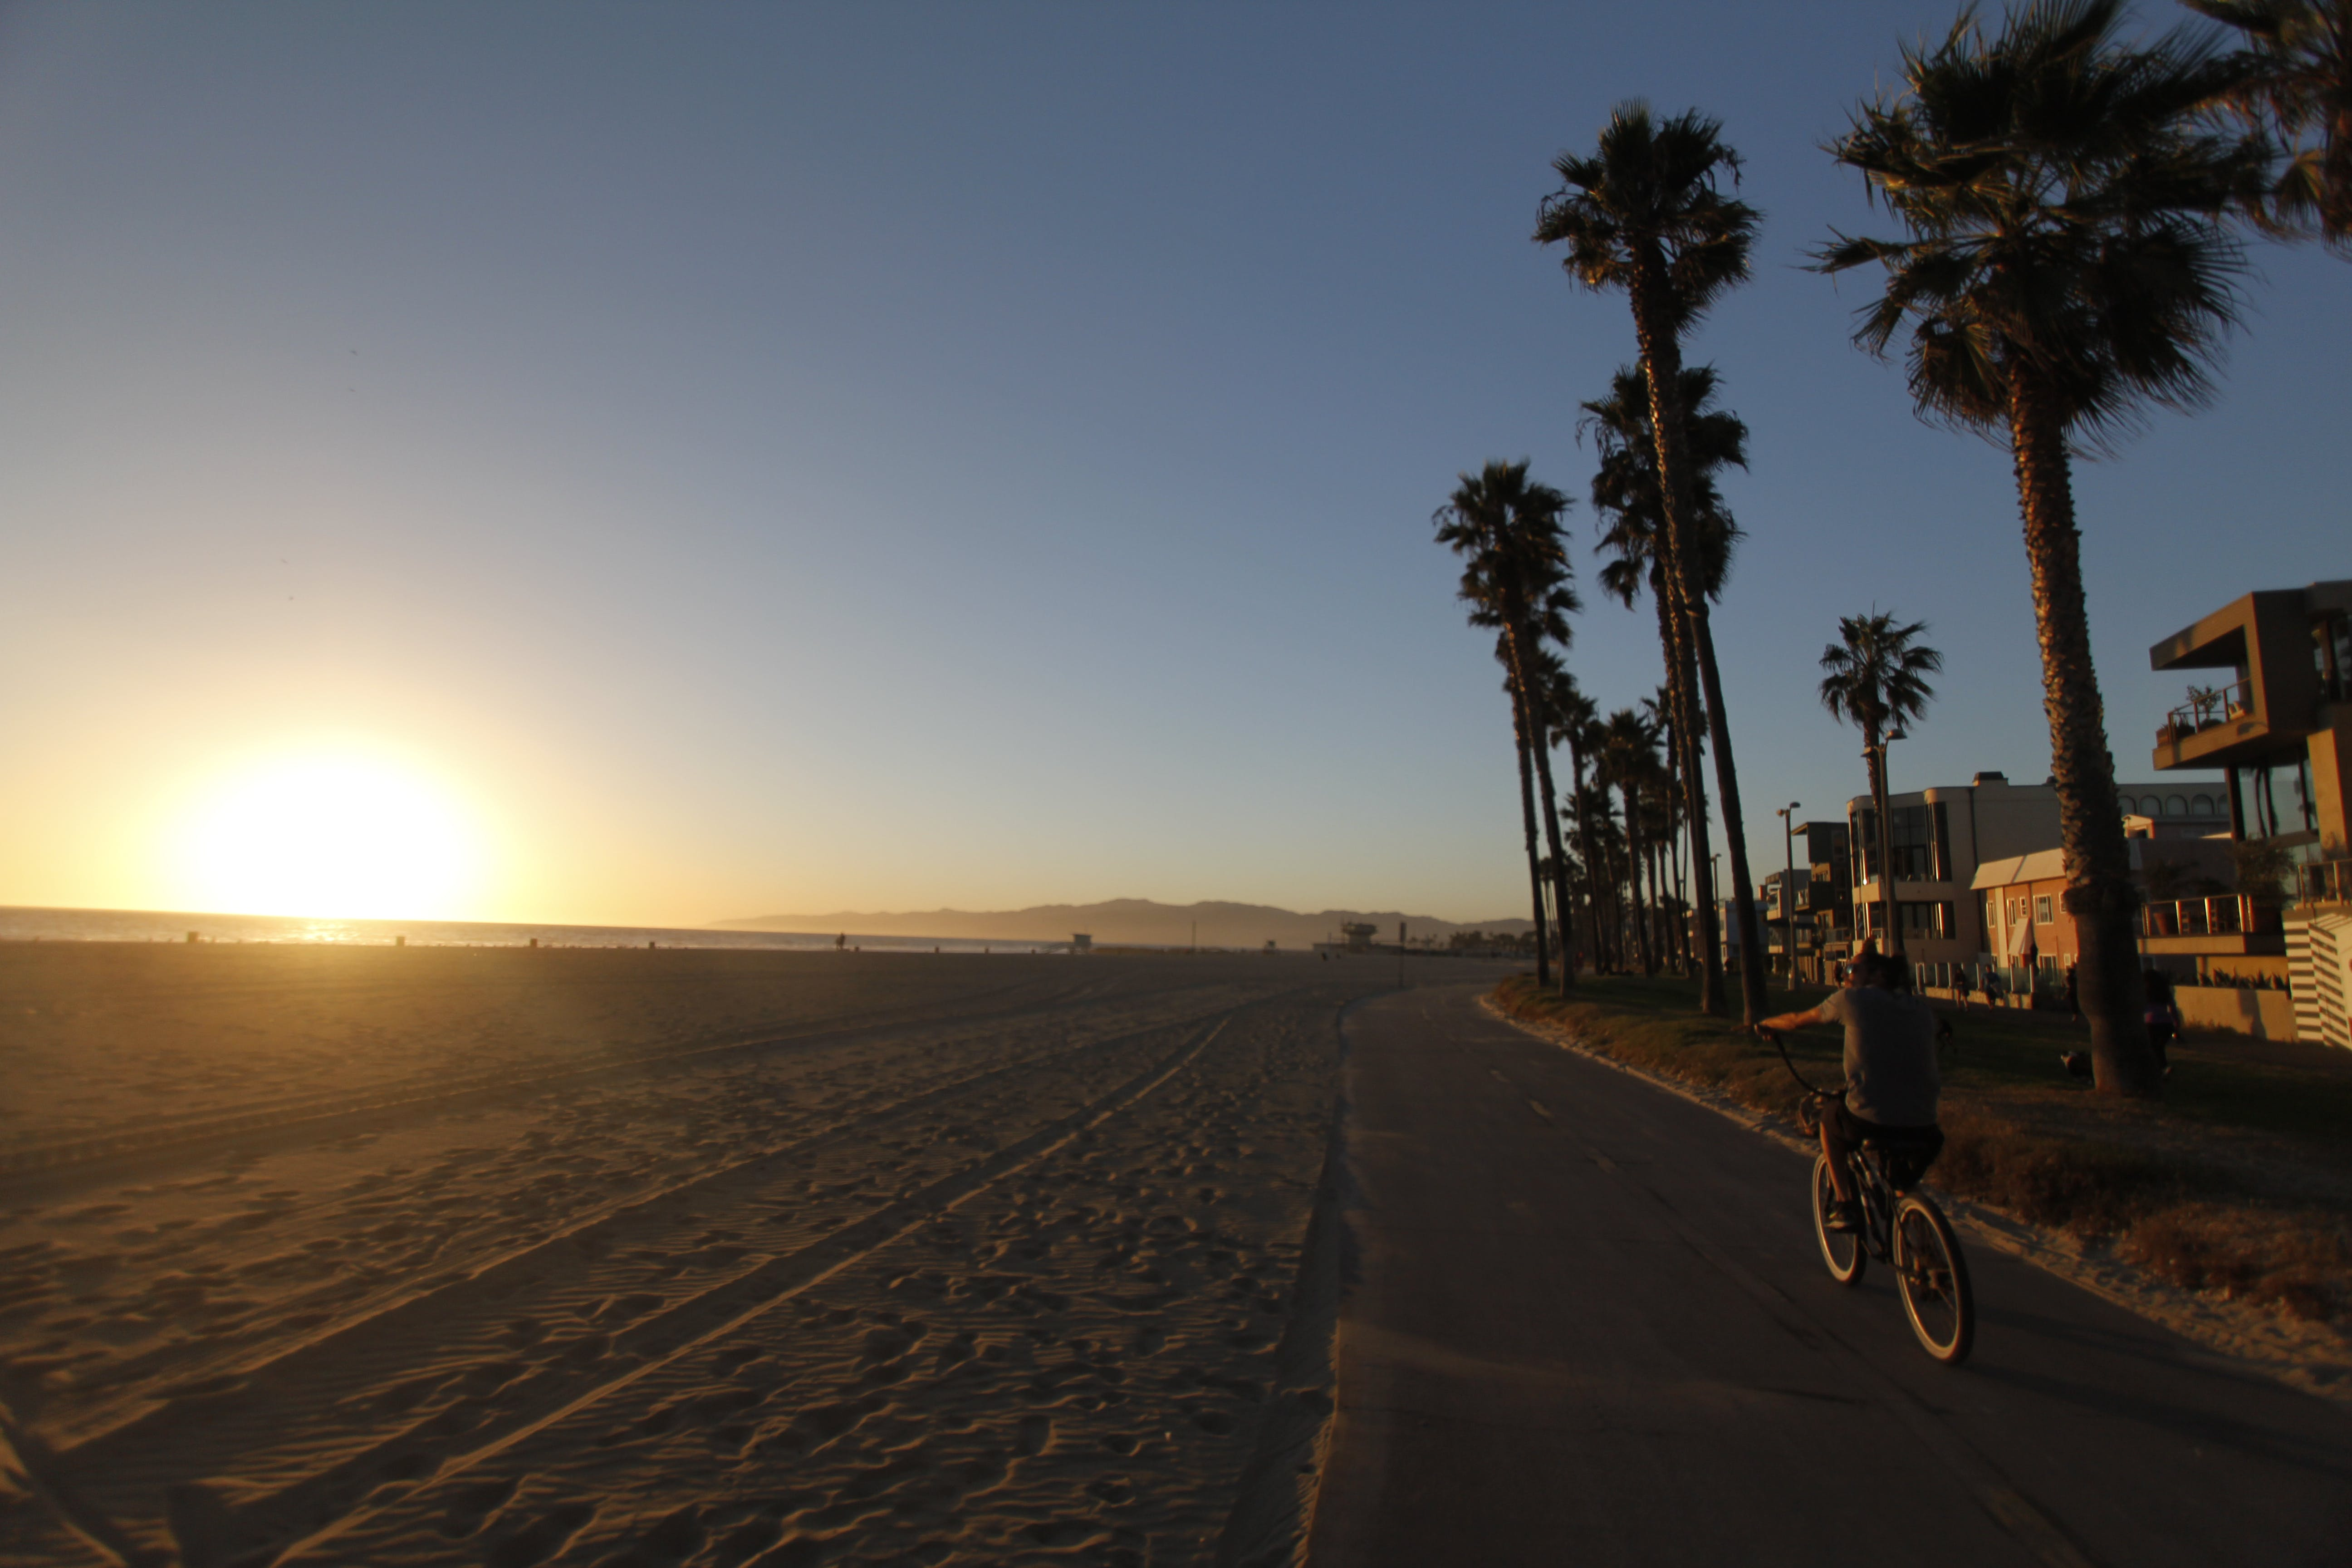 Free stock photo of beach, bicycle, los angeles, palm trees